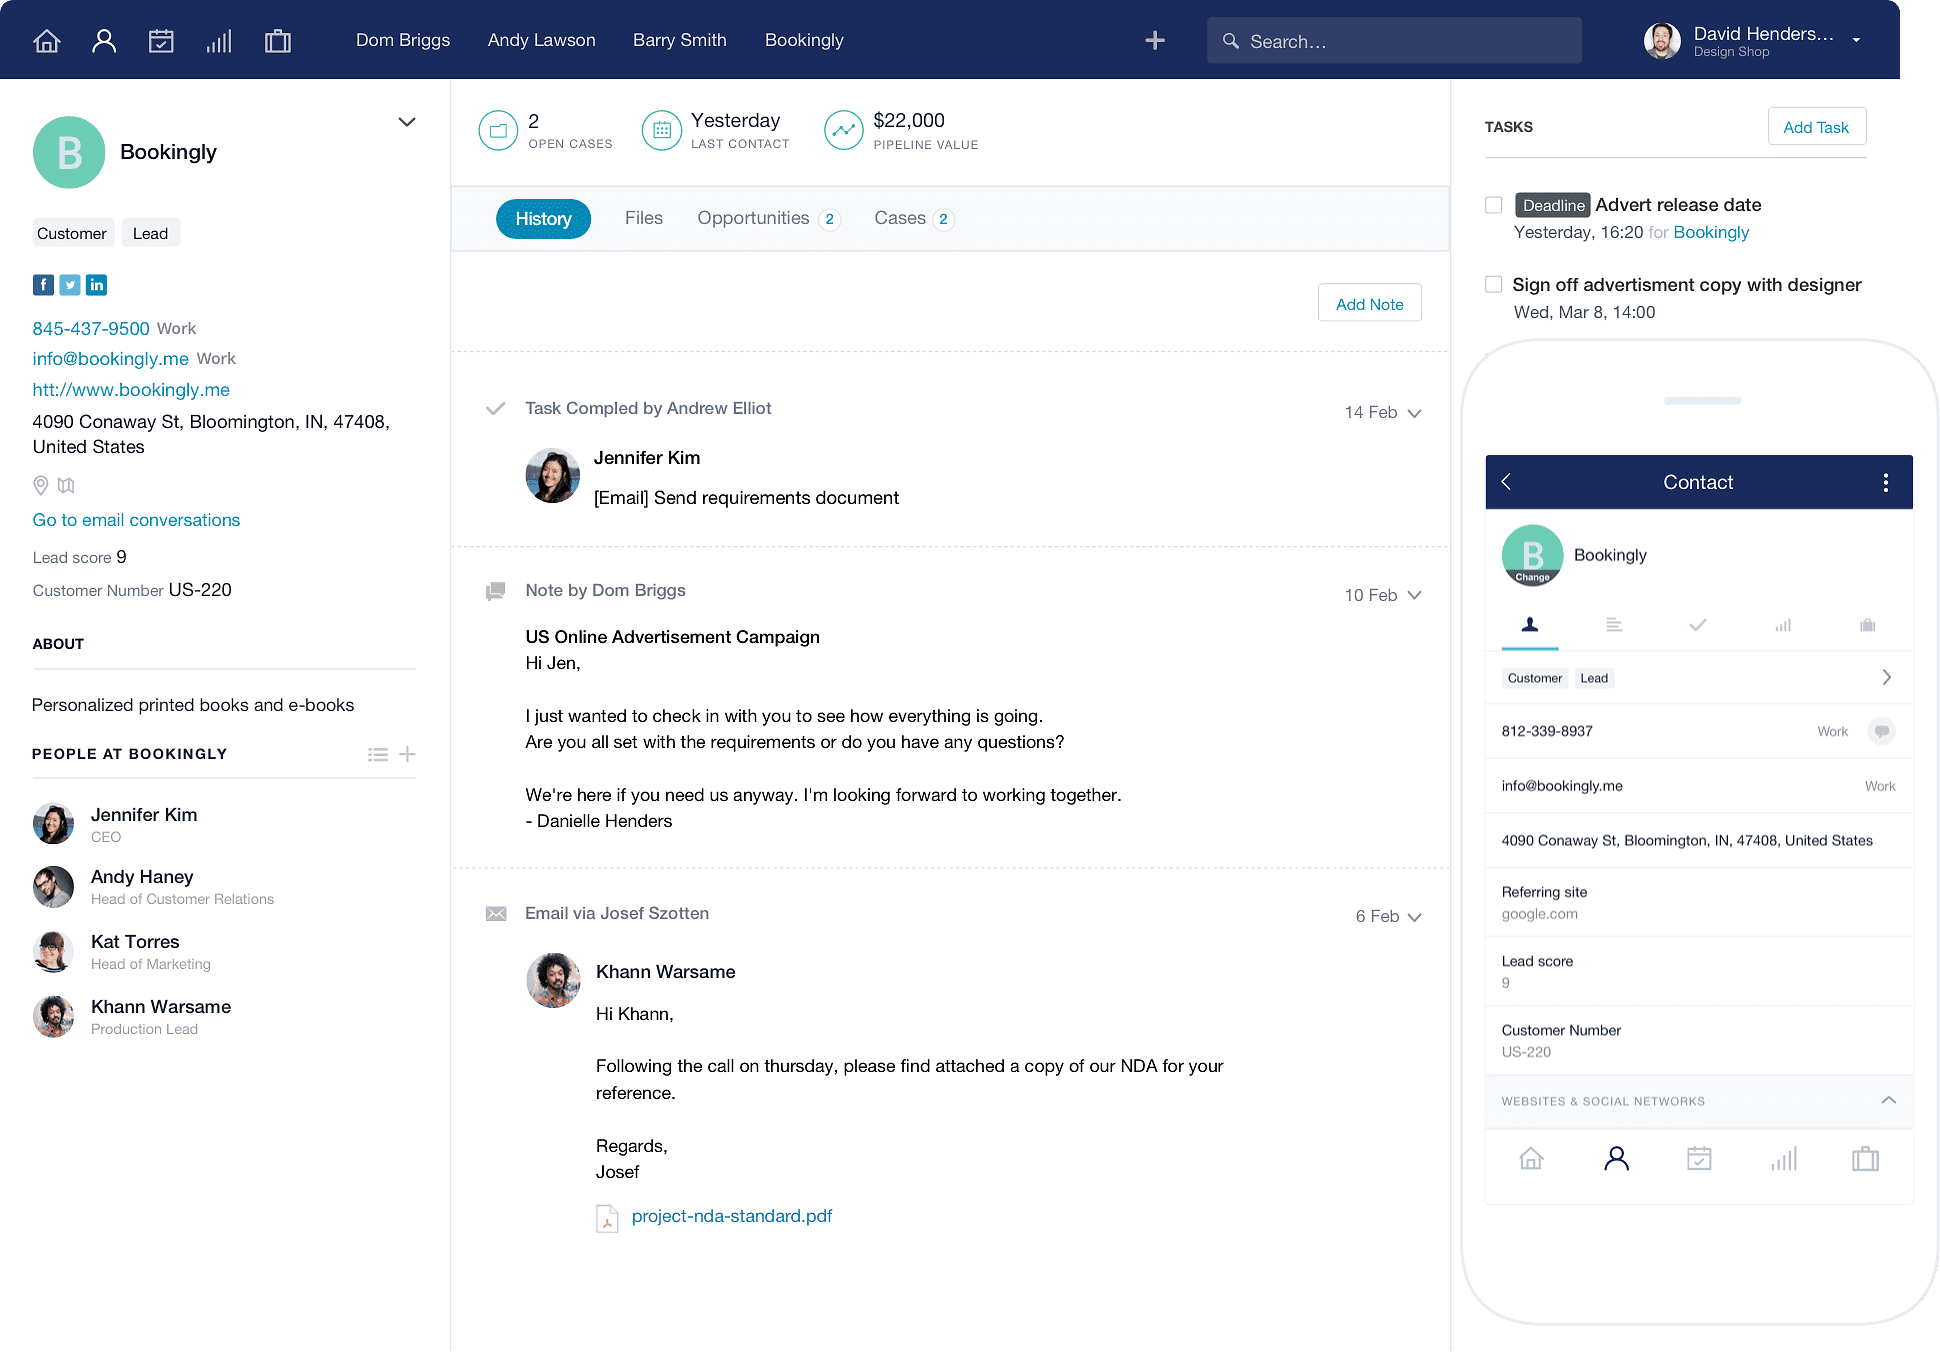 Contact profile page